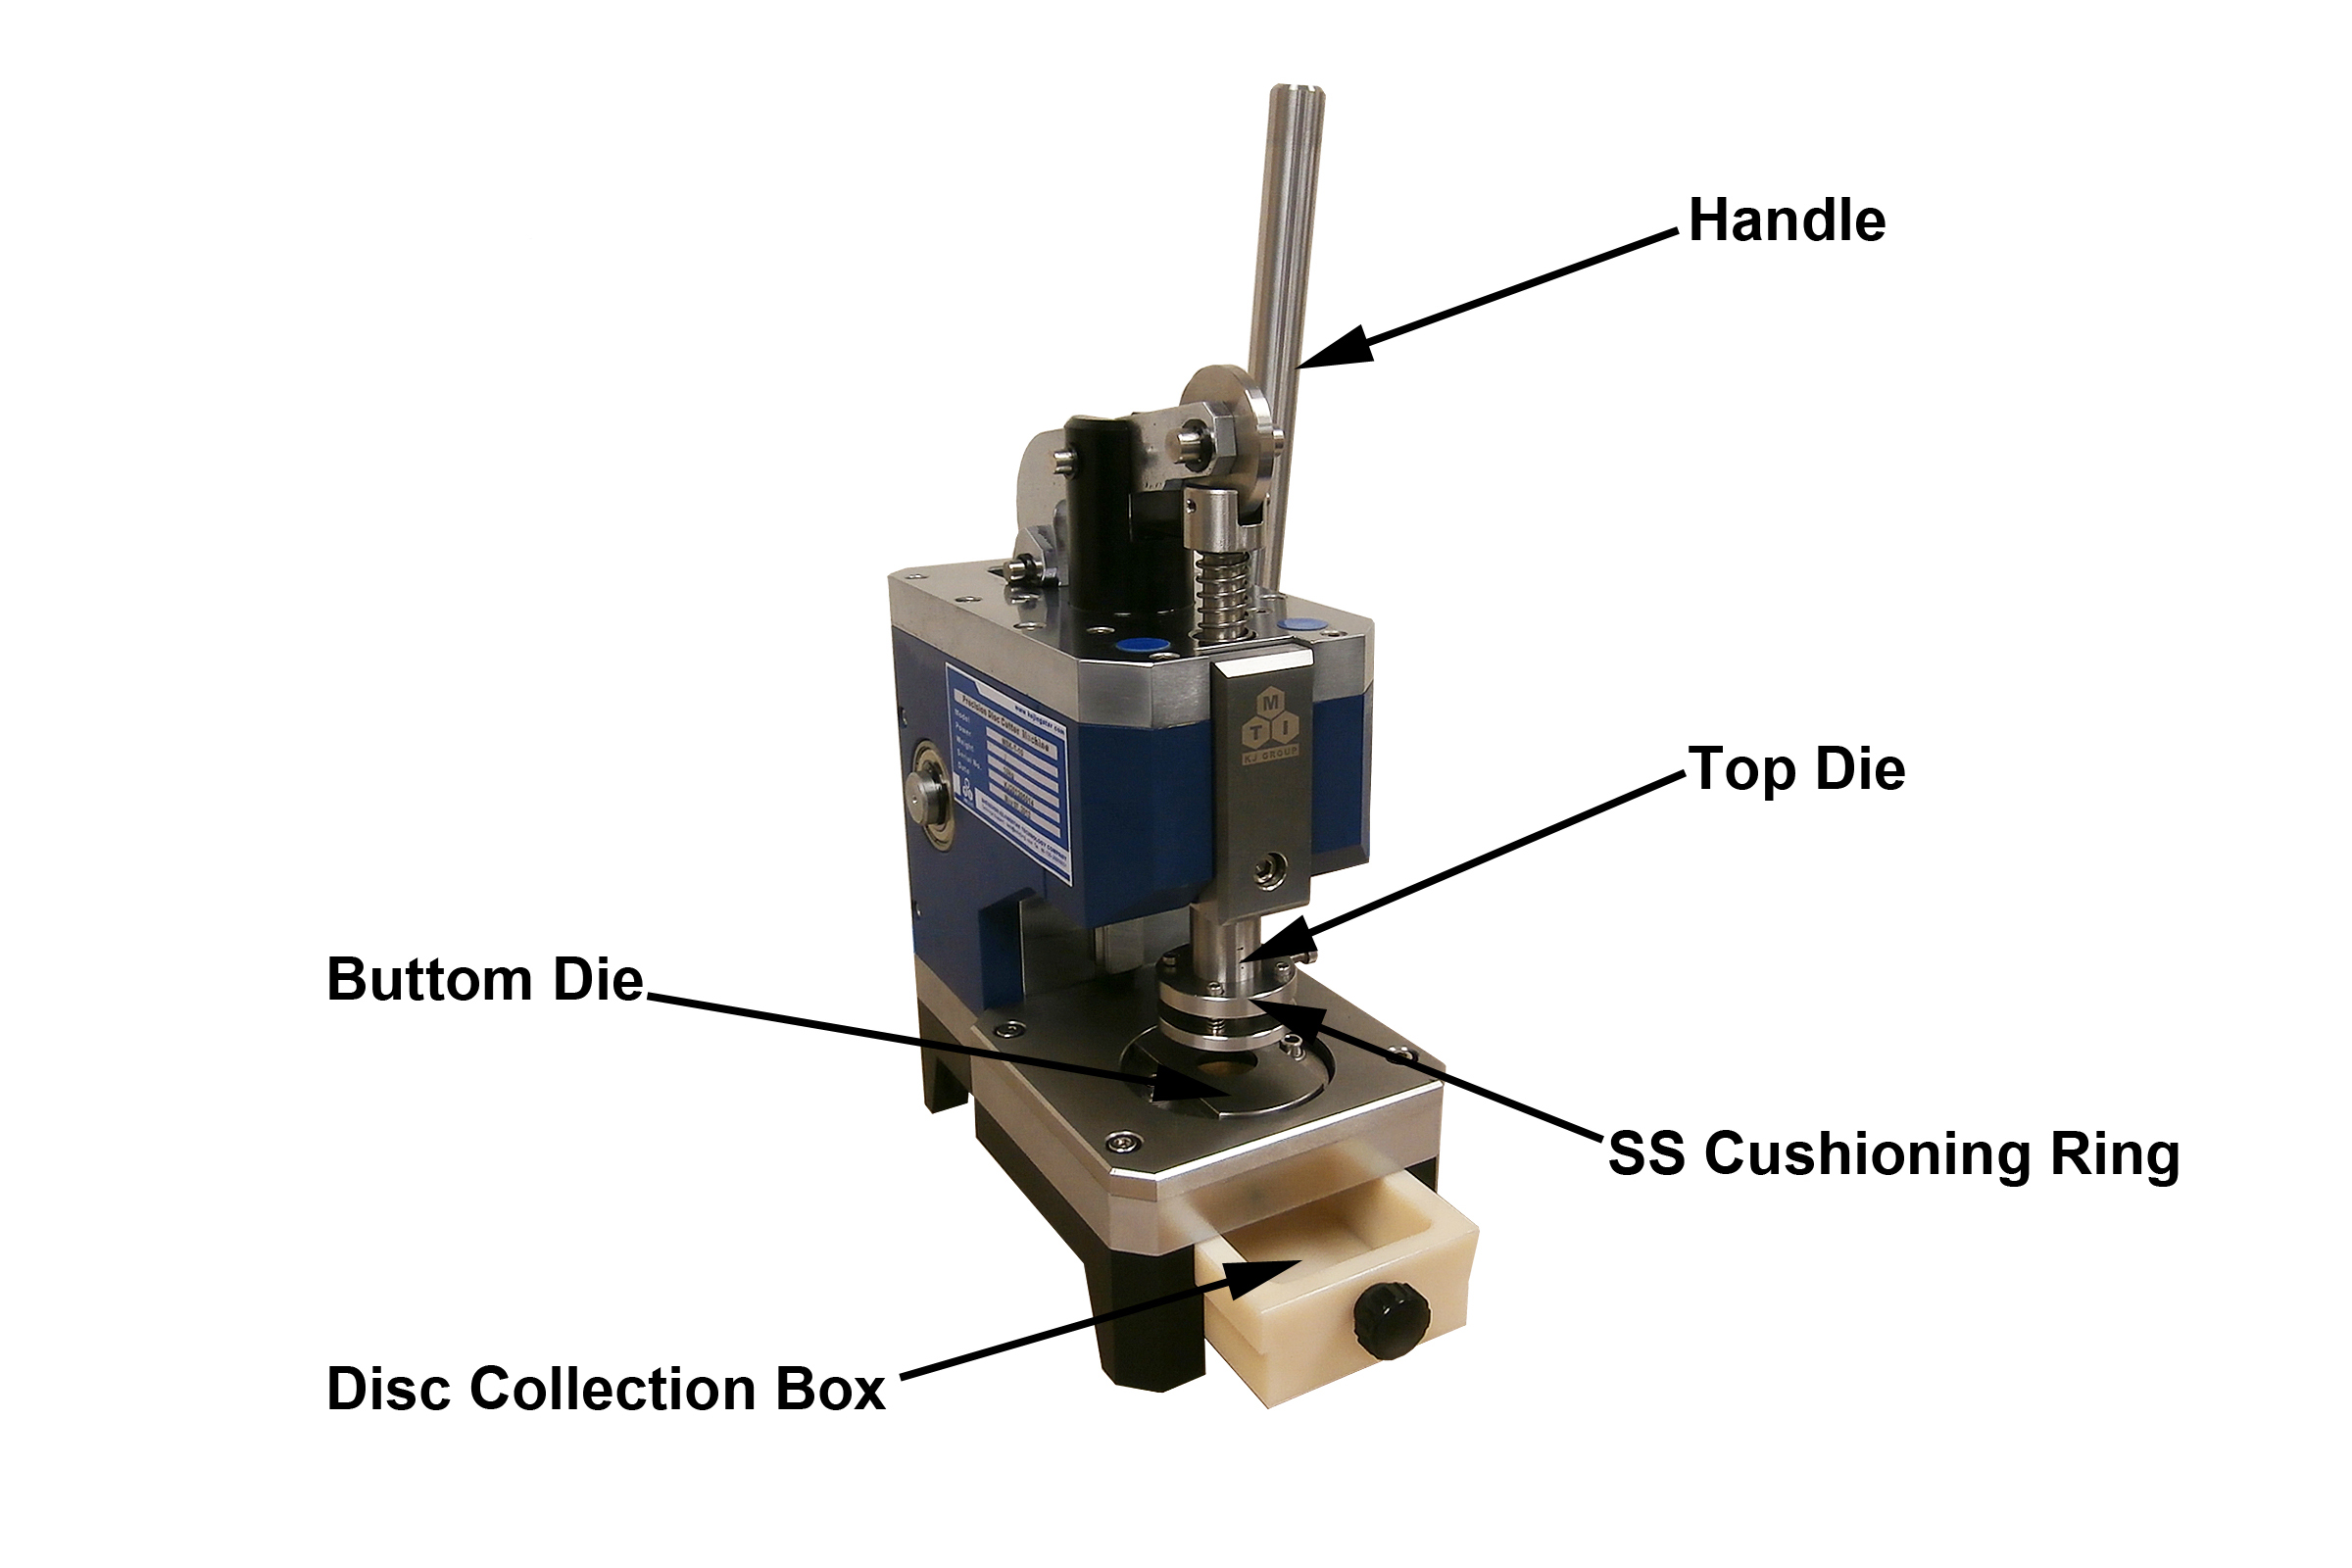 Precision Disc Cutter with Standard 16, 19, and 20mm